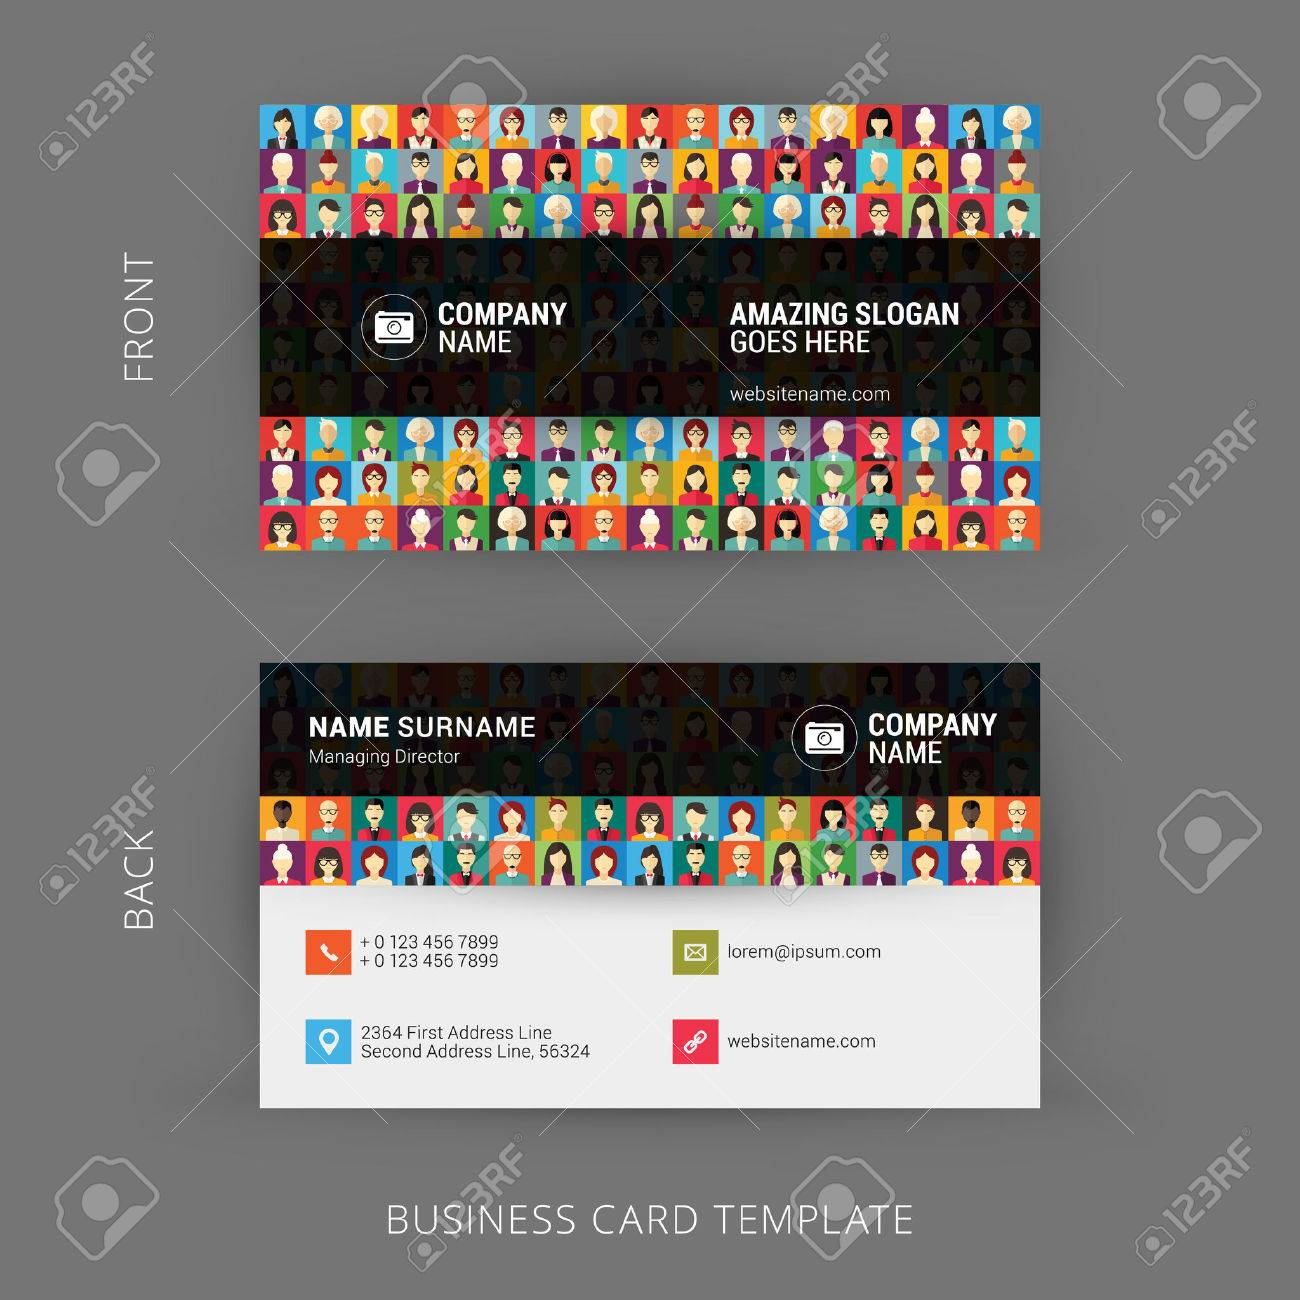 Creative and clean business card template flat design pattern creative and clean business card template flat design pattern with human faces stock vector colourmoves